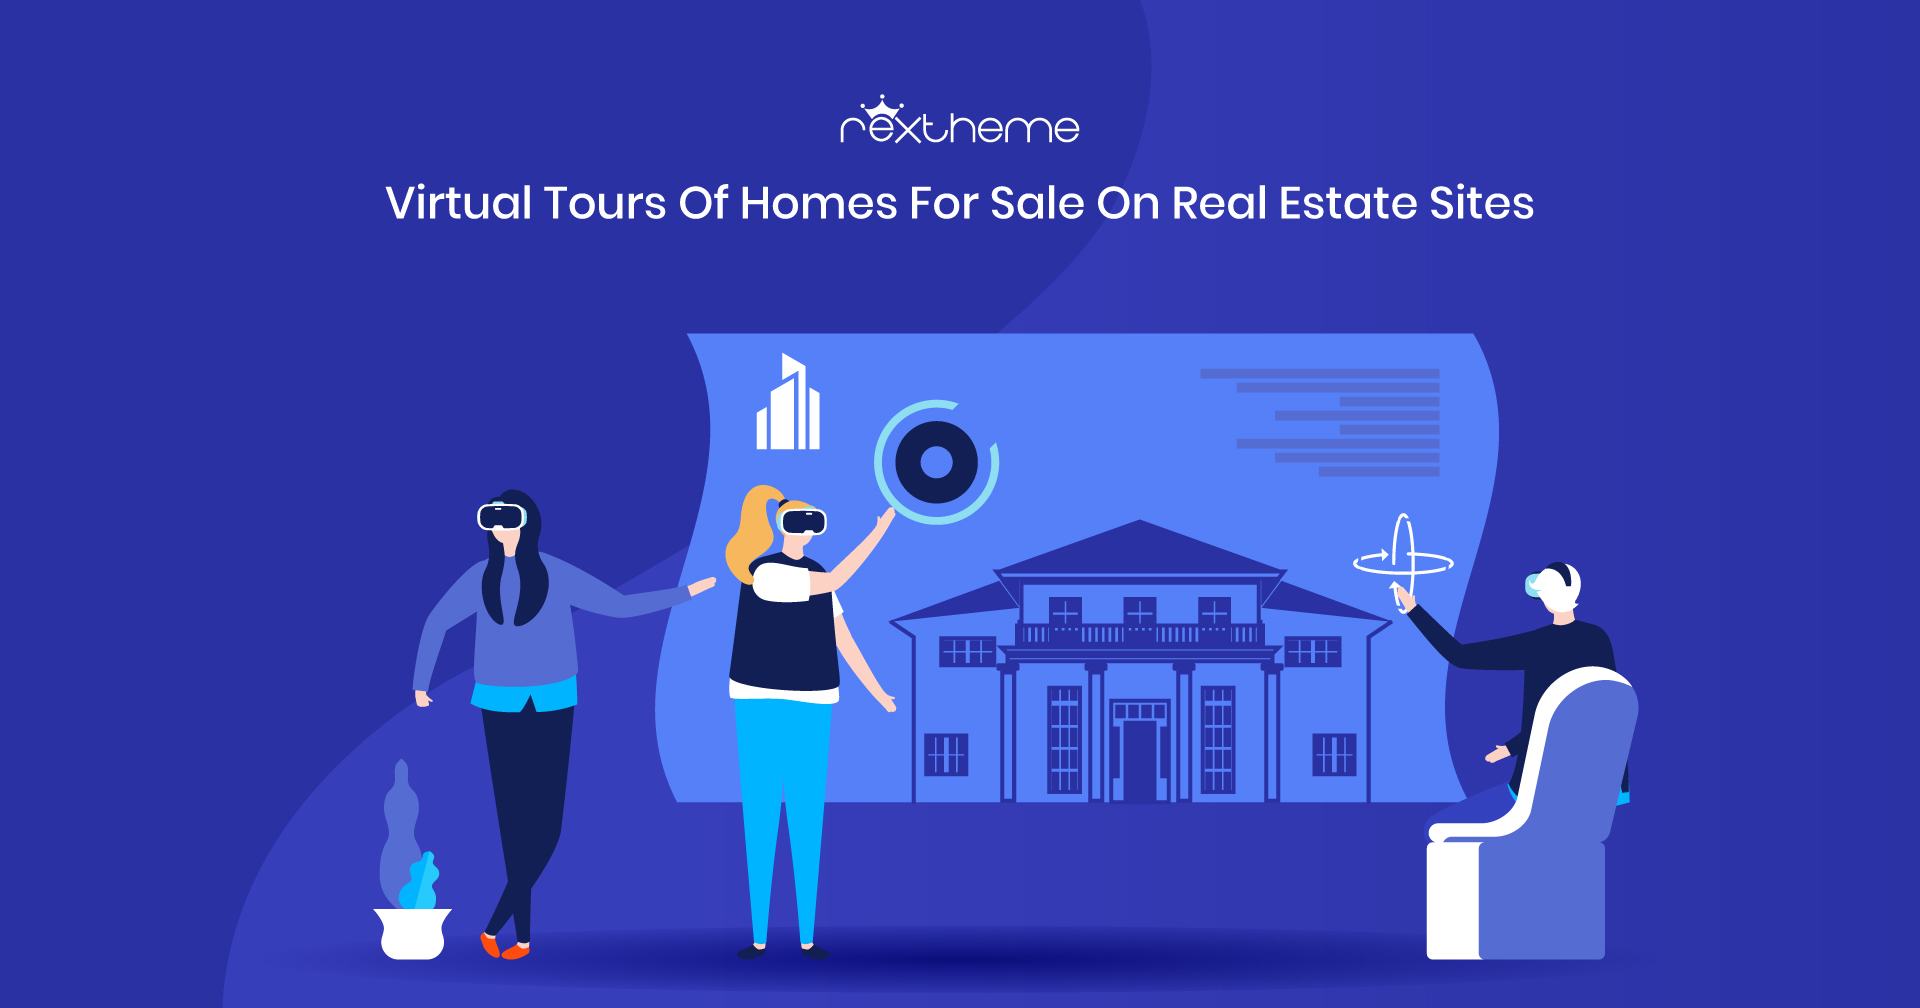 5 Great Reasons Why You Should Use Virtual Tours Of Homes For Sale